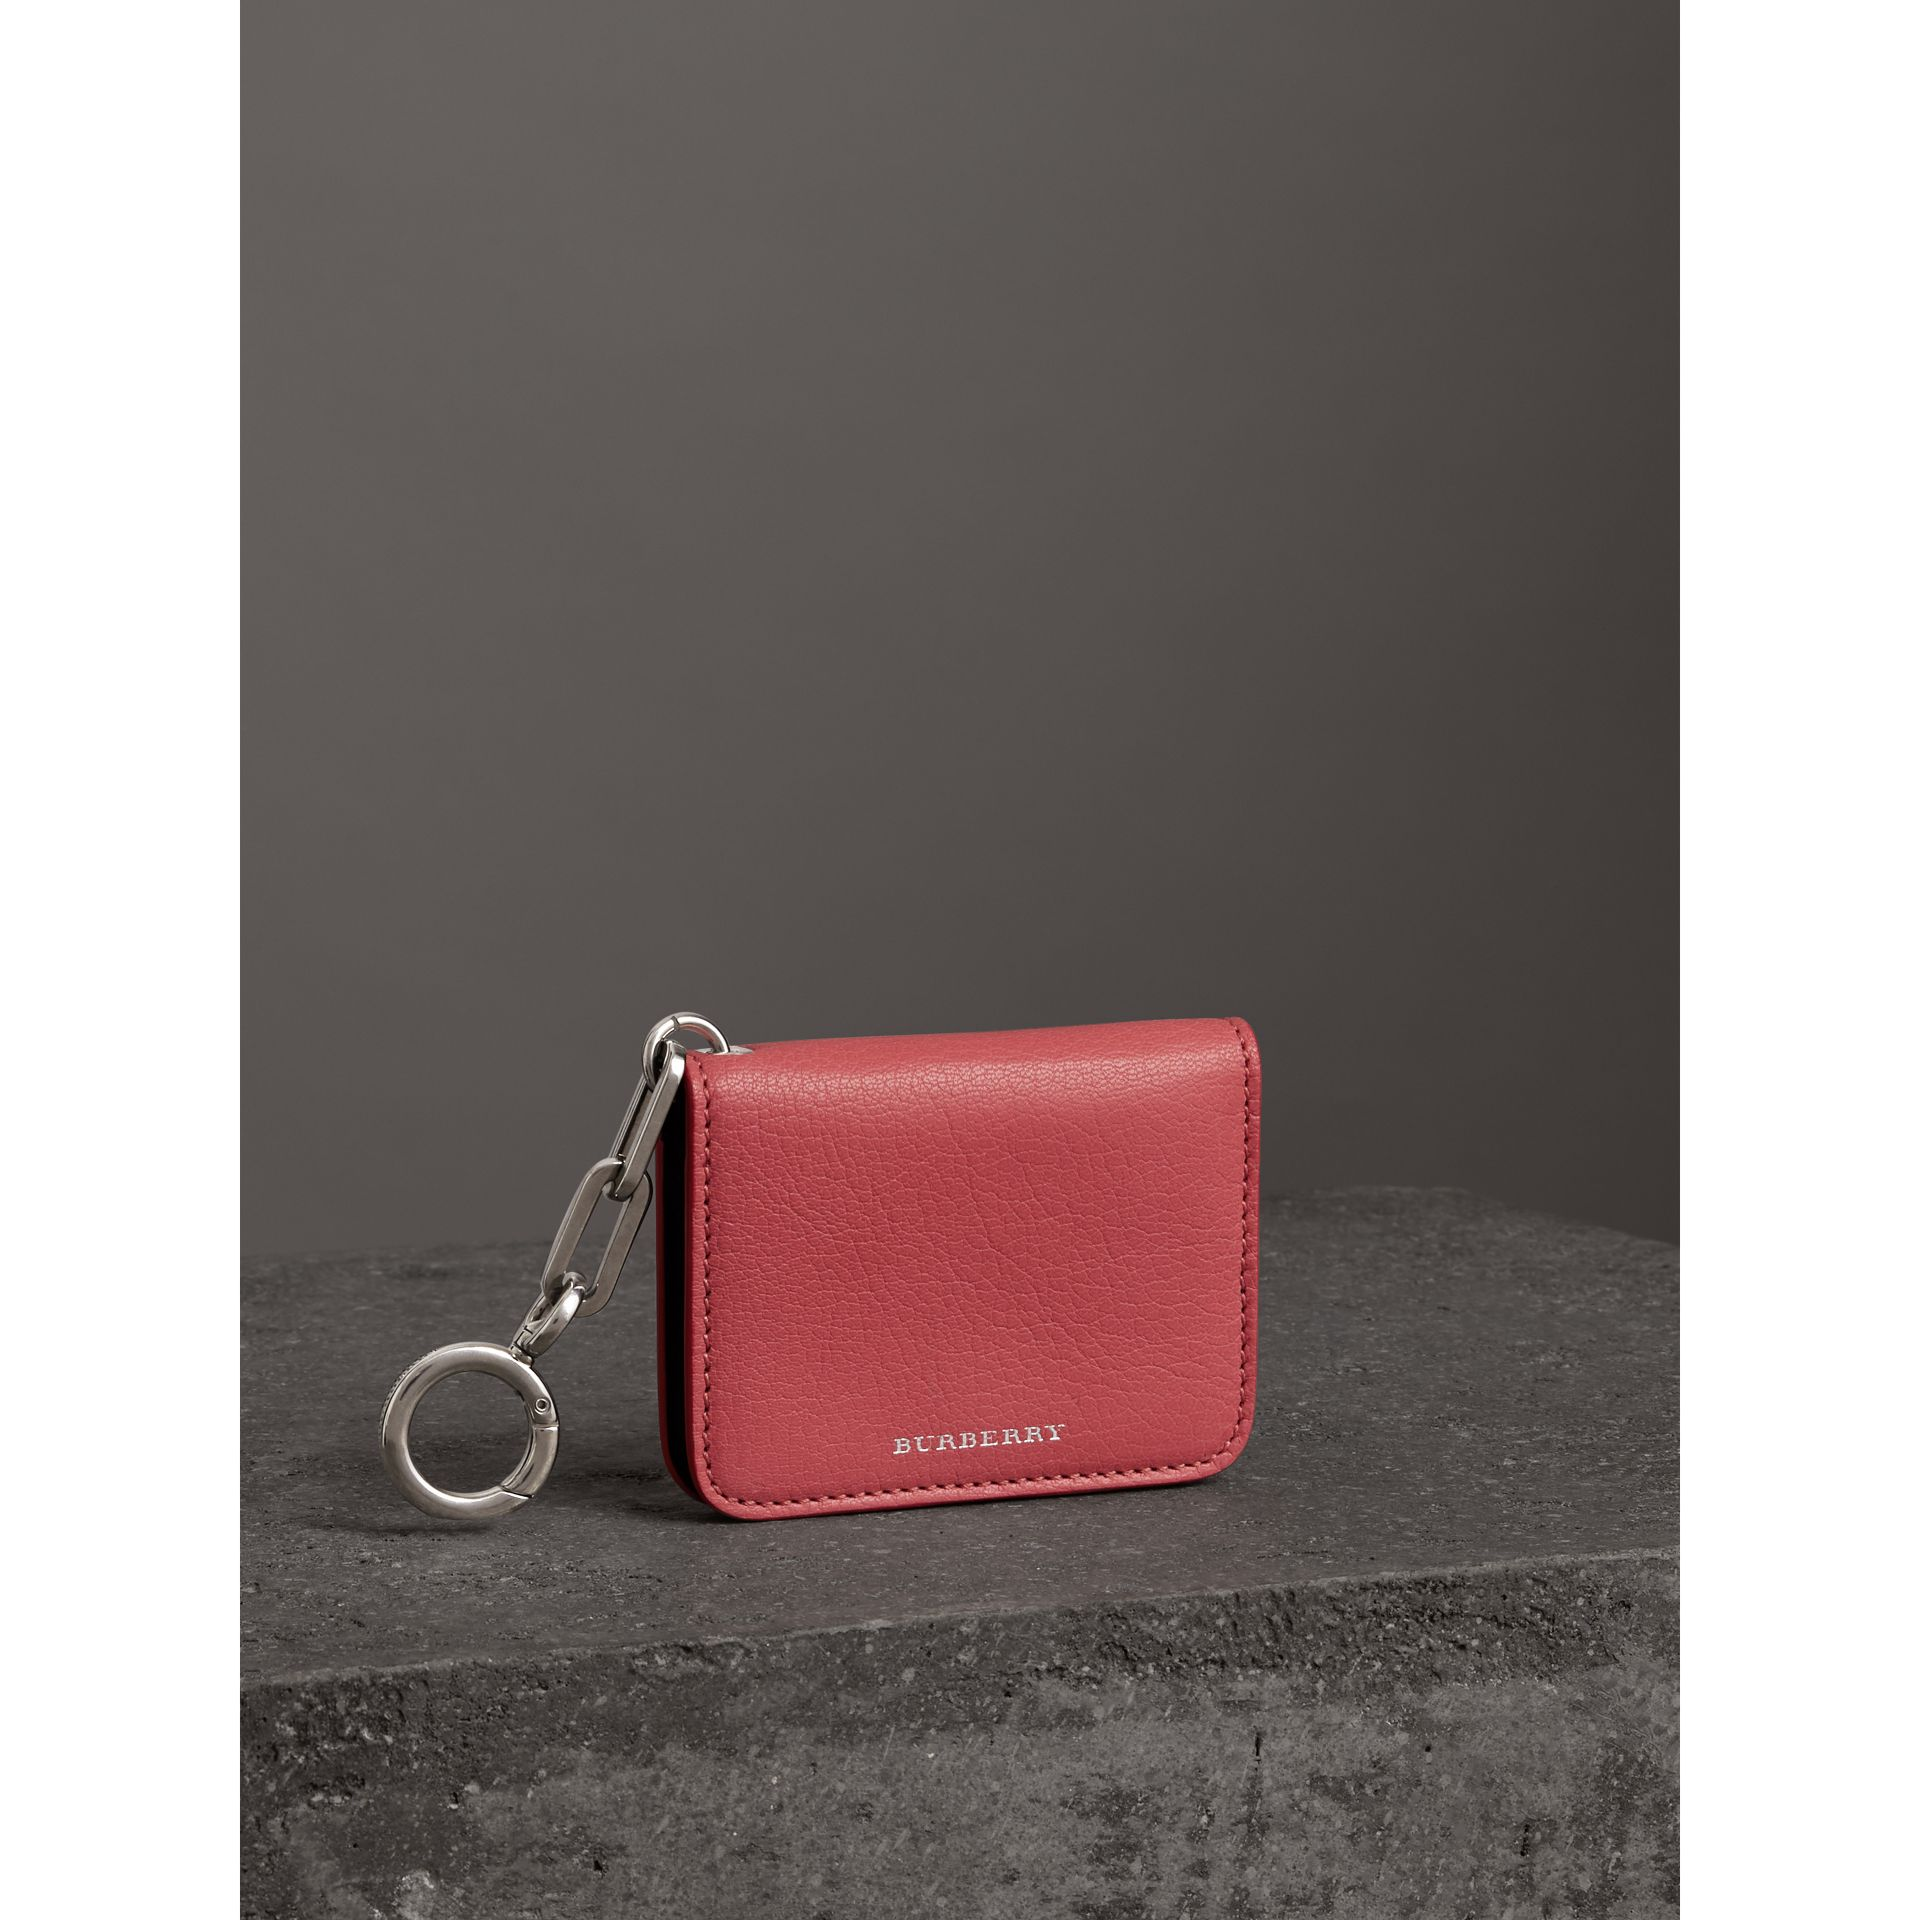 Link Detail Leather ID Card Case Charm in Bright Coral Pink - Women | Burberry Hong Kong - gallery image 5